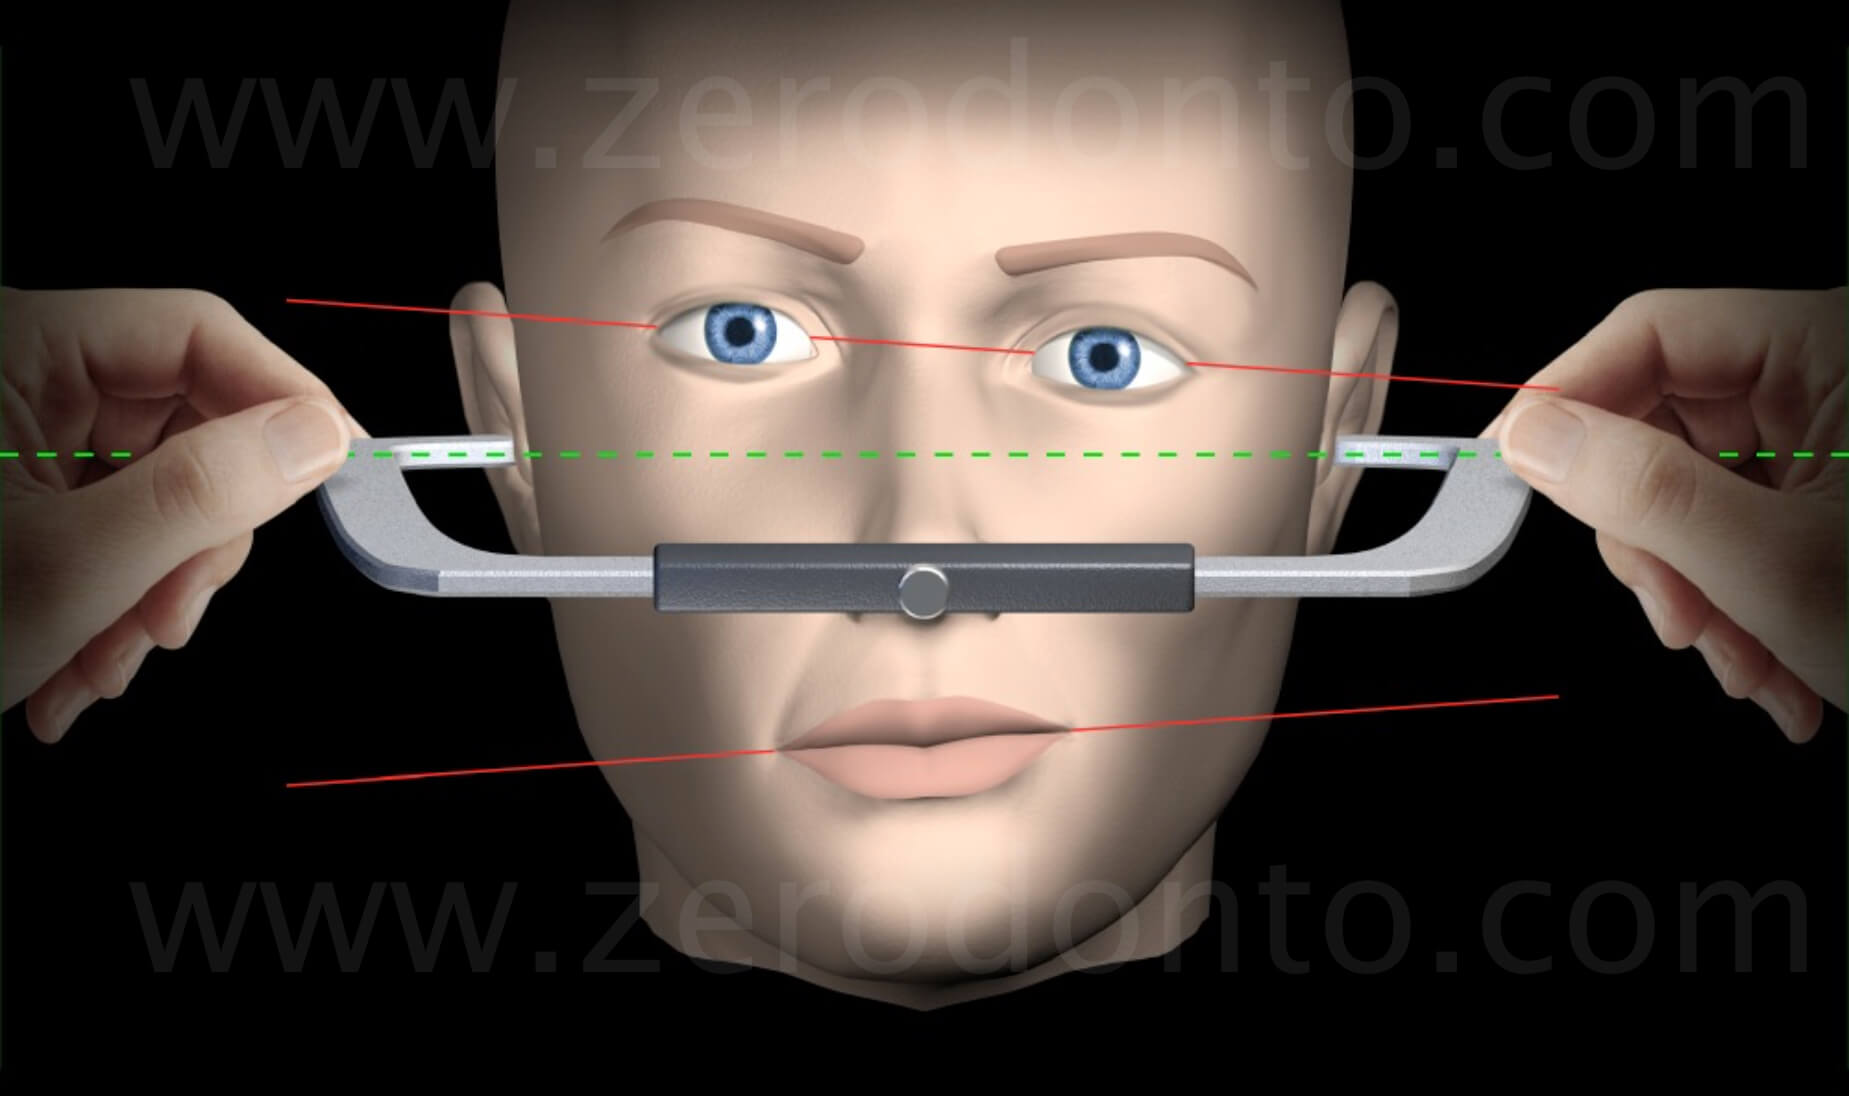 reference linesfacial analysis